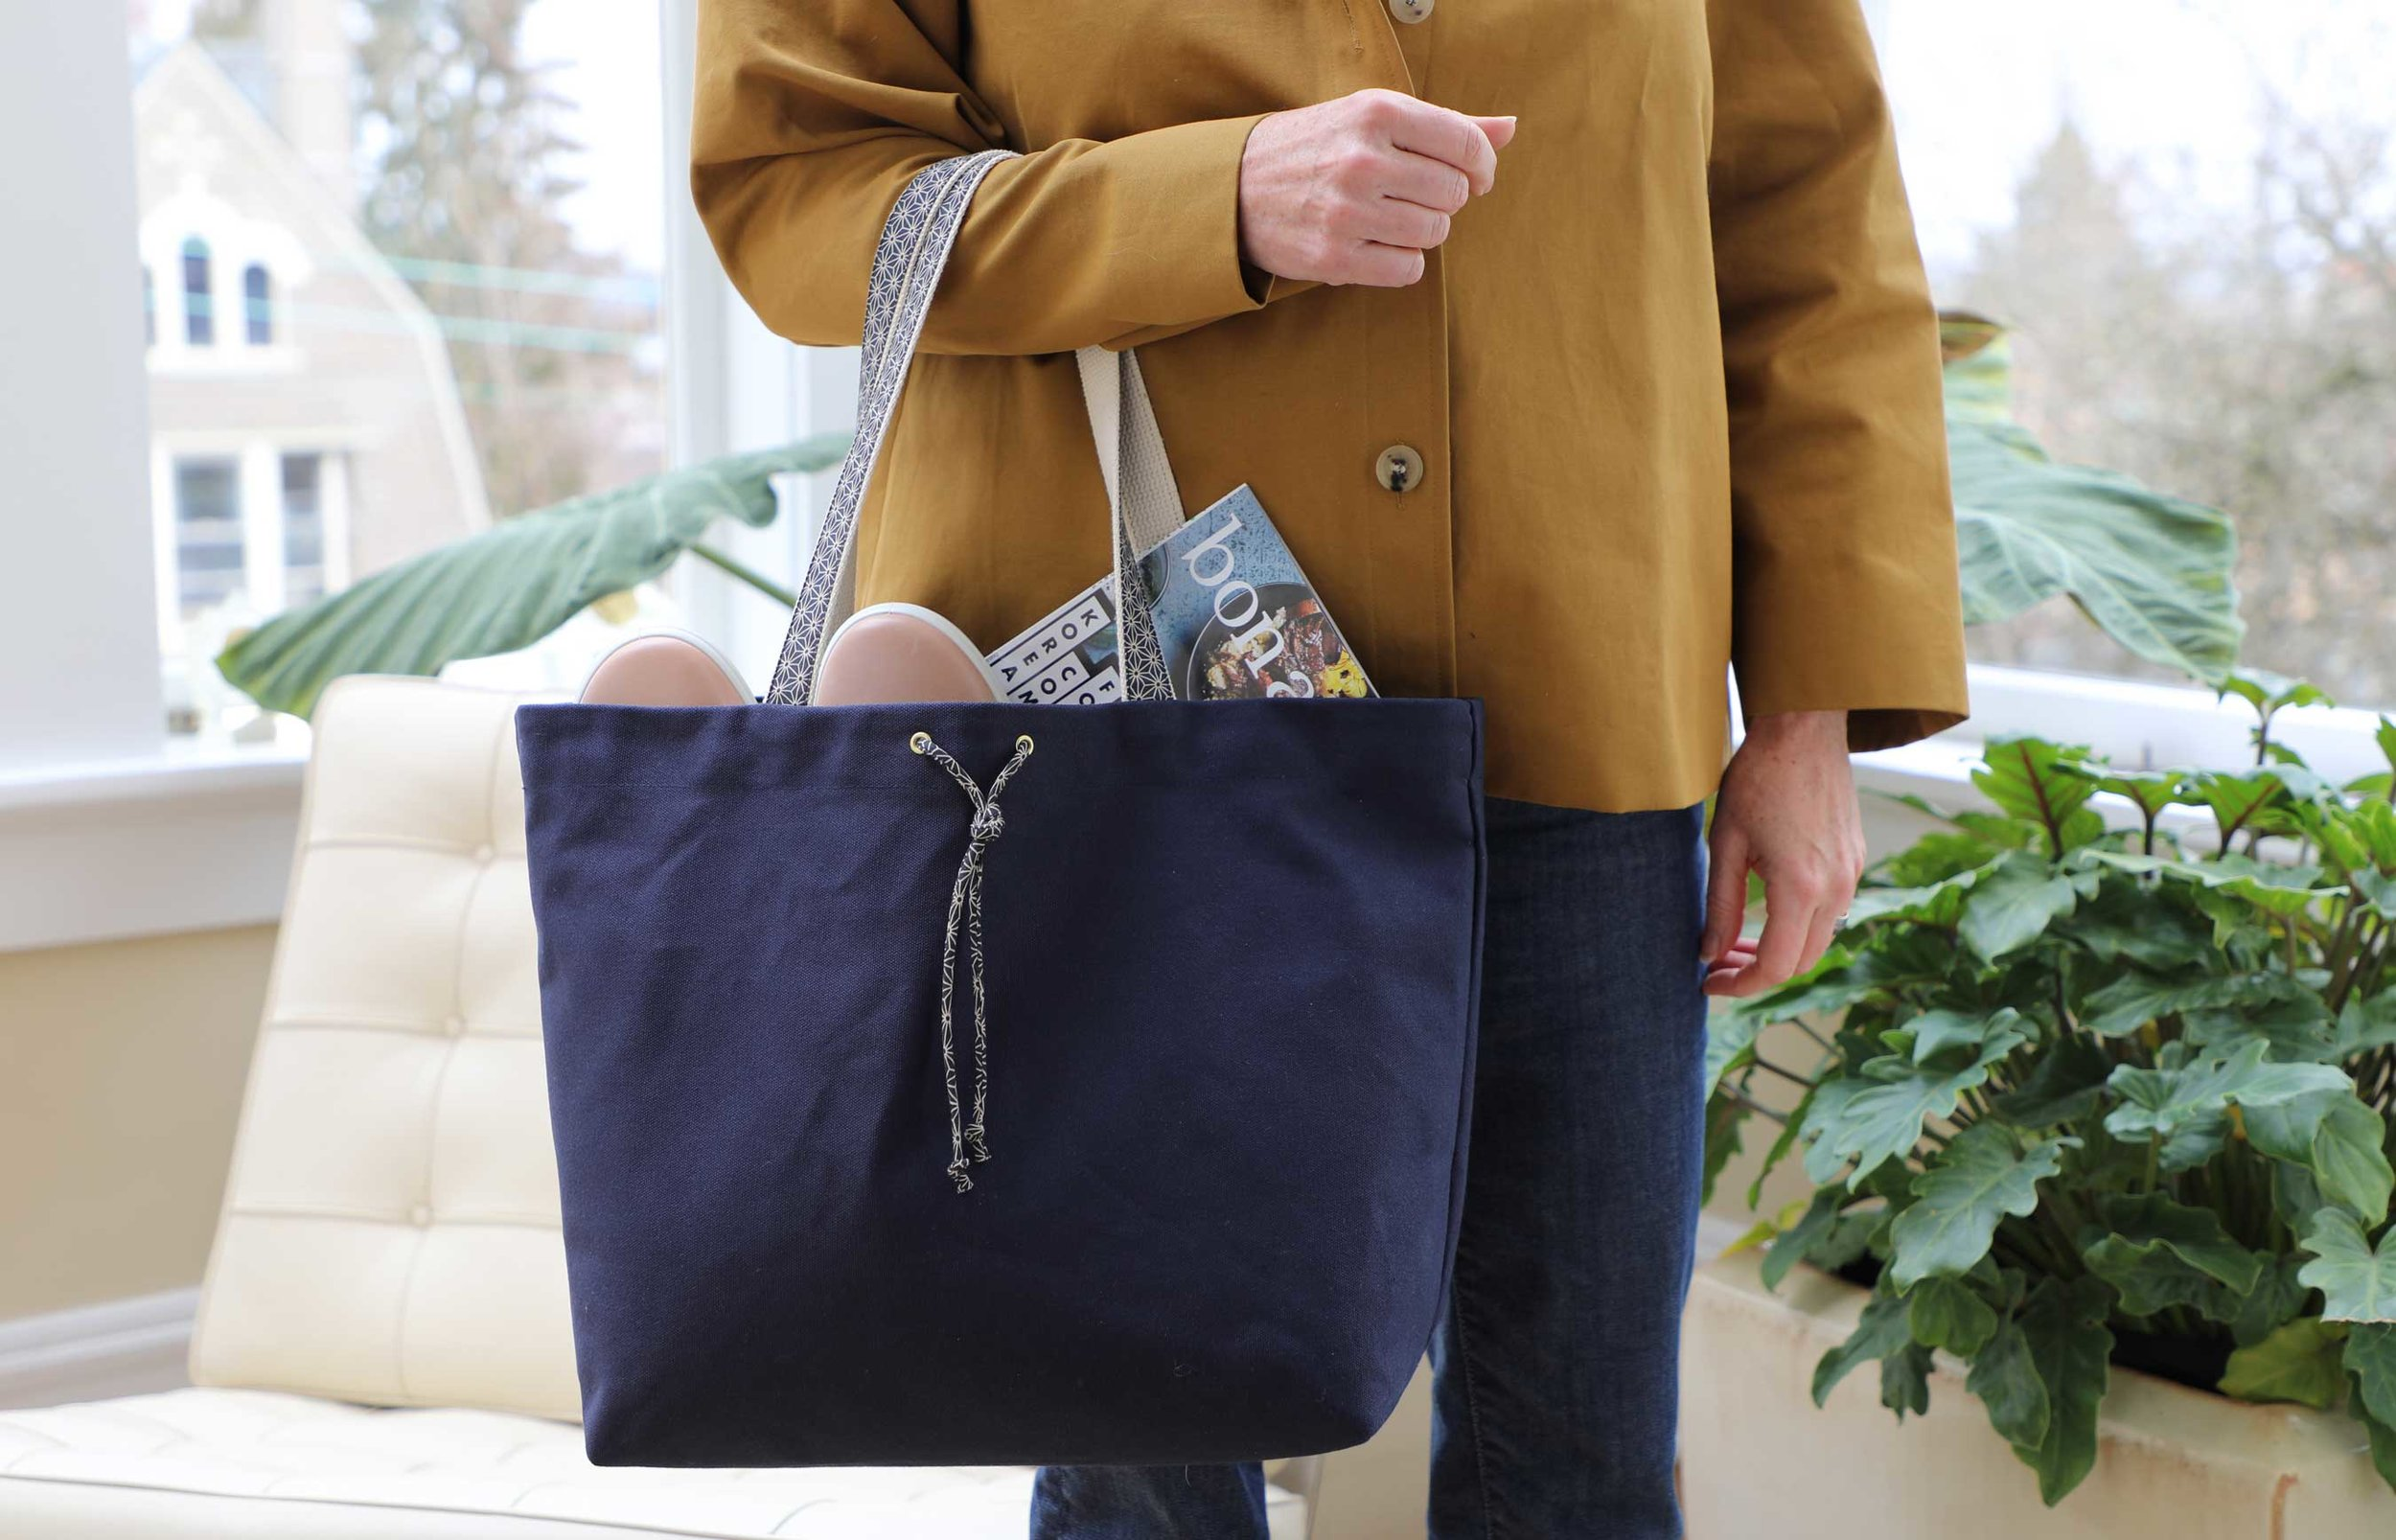 Carry all your goodies in style with the Calla Tote. This simple tote combines fashion and function: Fit your laptop, your workout clothes, and your lunch in here, leaving your purse to take care of her own duties.